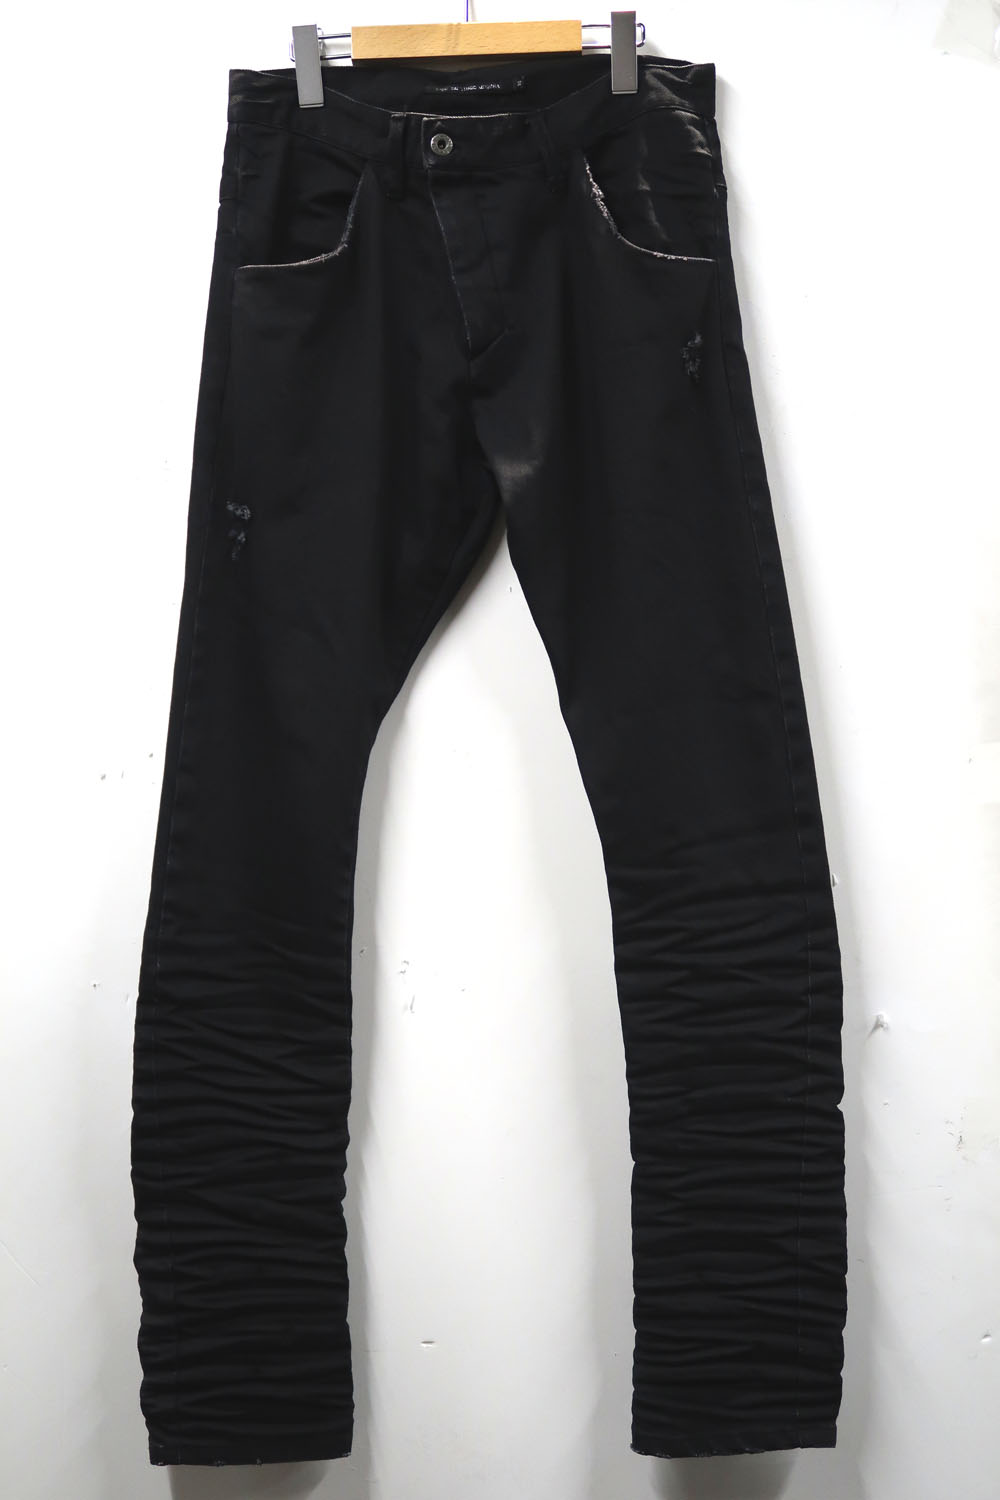 Cotton Solid-pleated Stretch Denim Pants